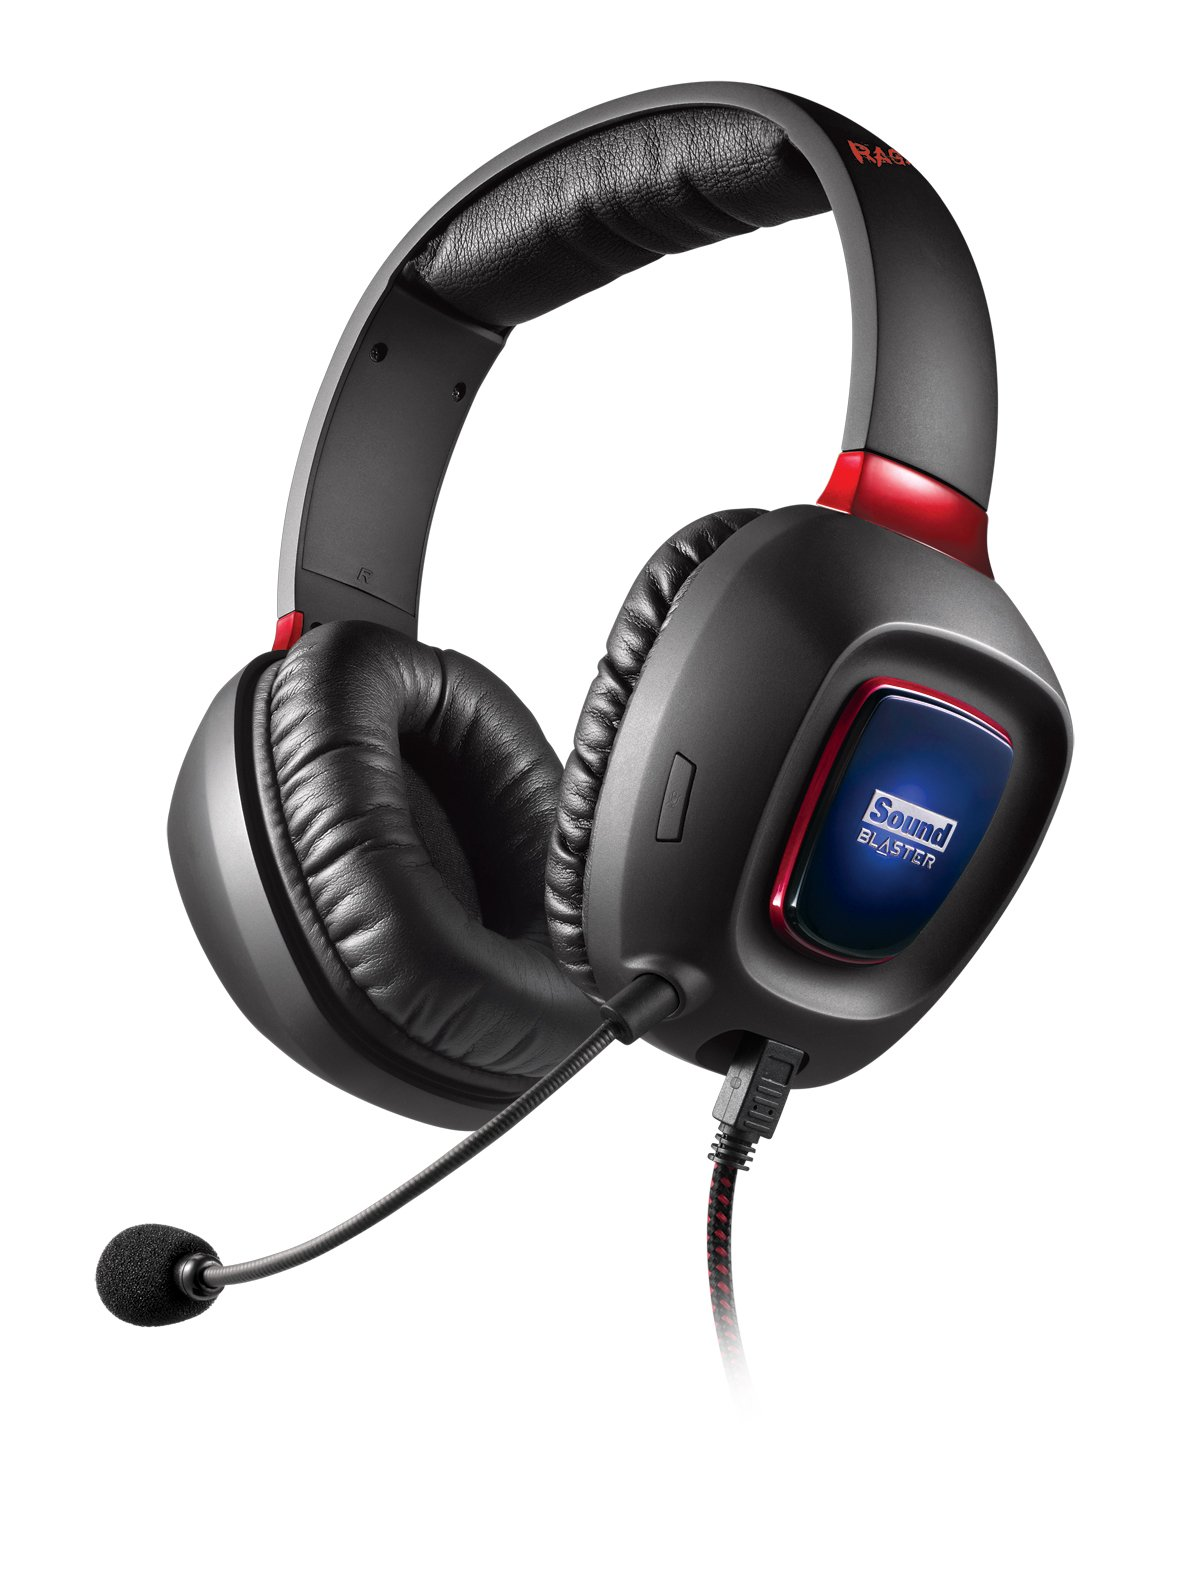 Creative Sound Blaster Tactic3D Rage USB Gaming Headset by Creative (Image #3)